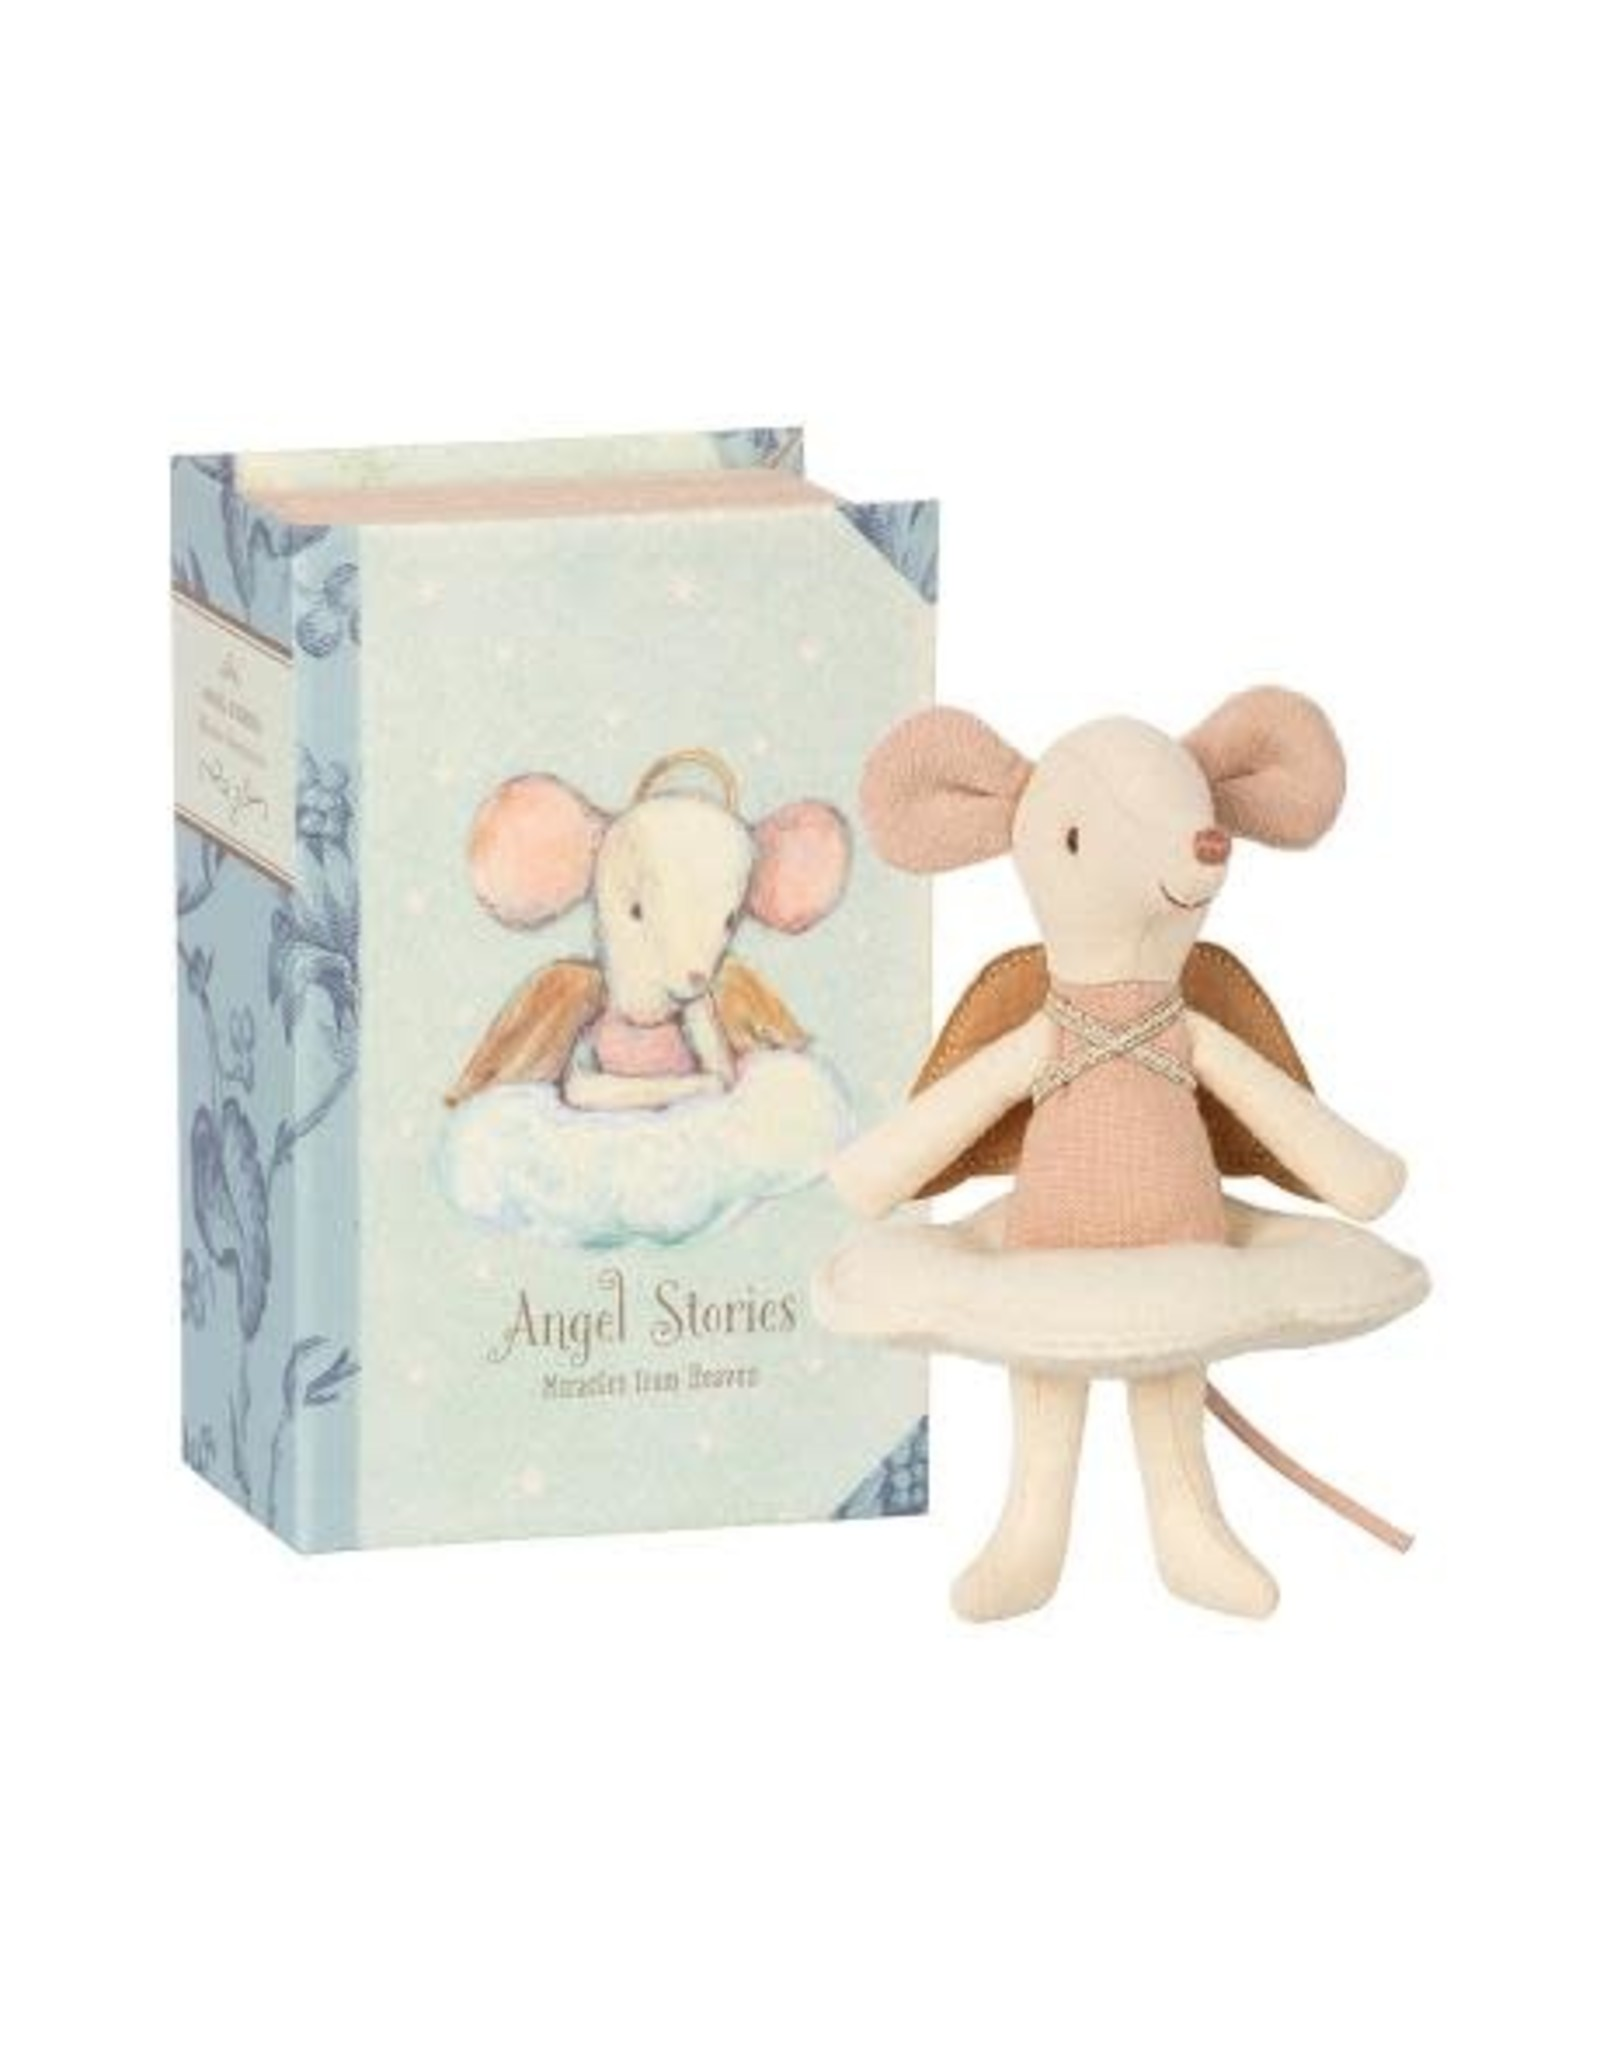 MAILEG Angel mousse, big sister in book